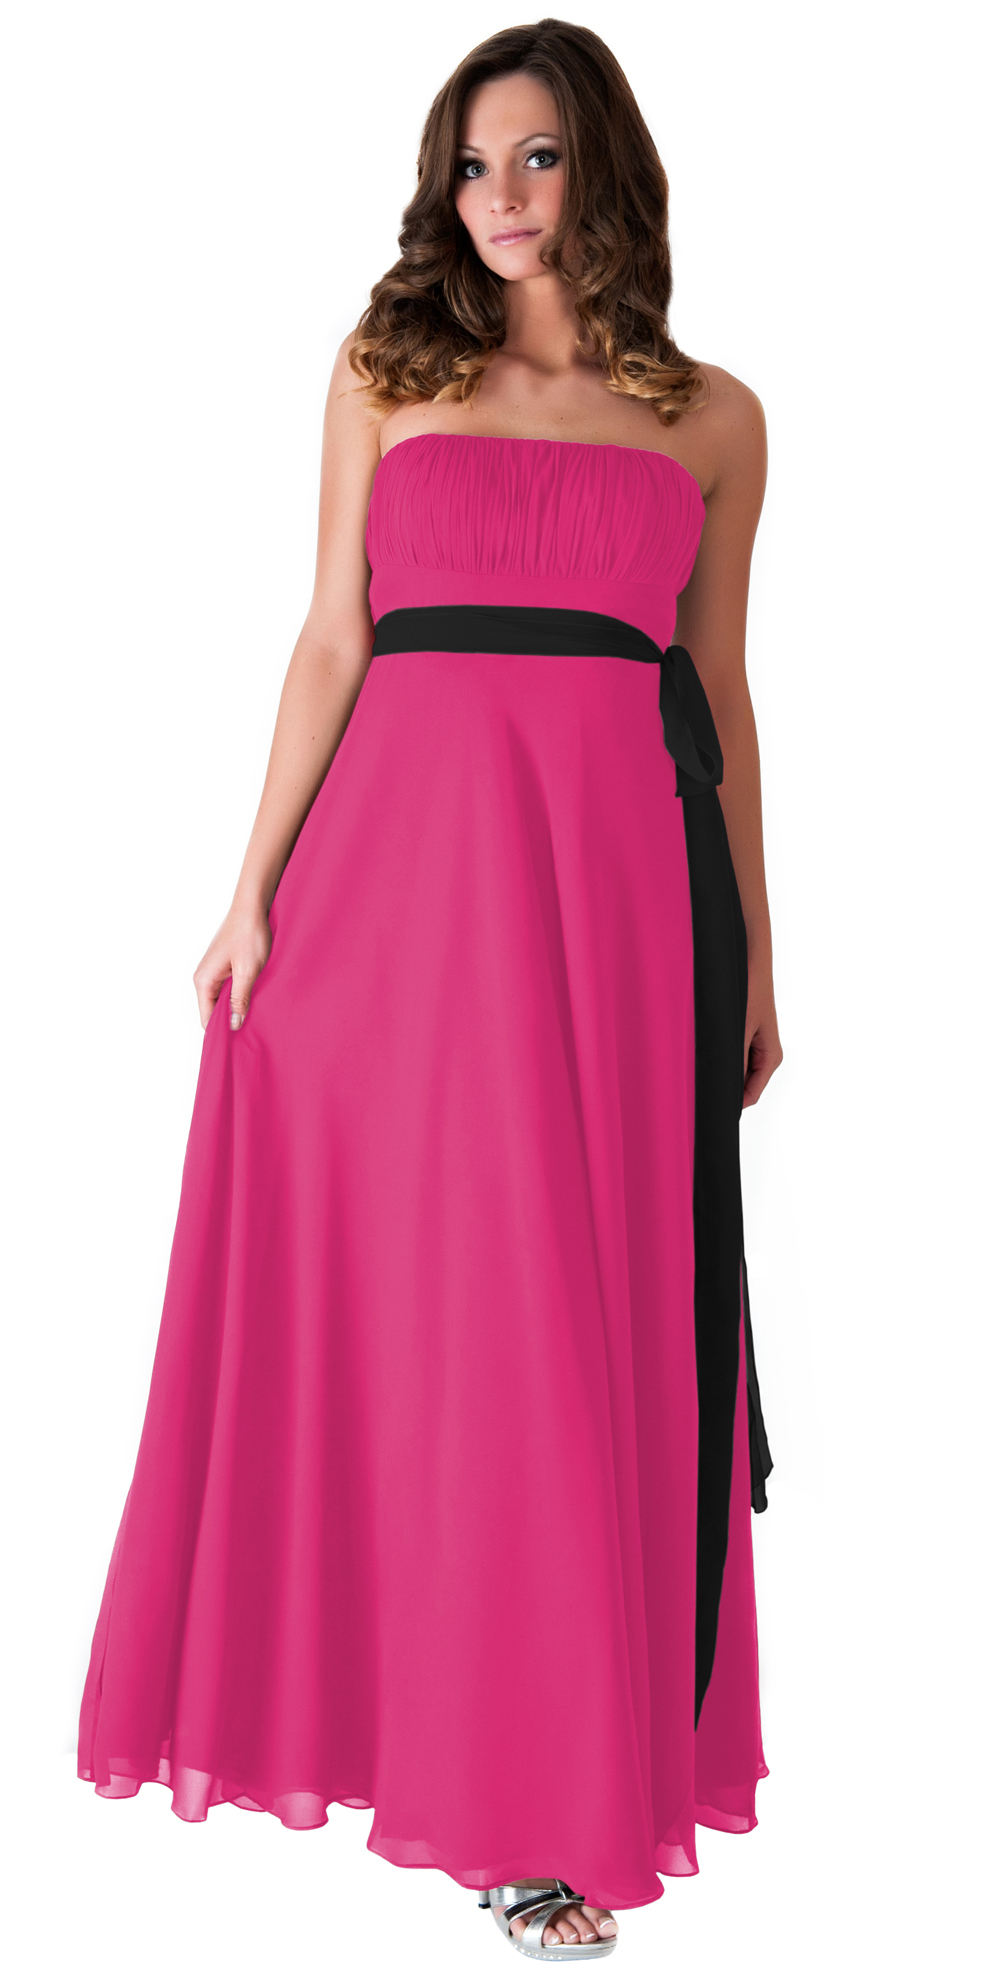 Formal Dress Long Evening Gown Bridesmaid Wedding Party Prom XS ...